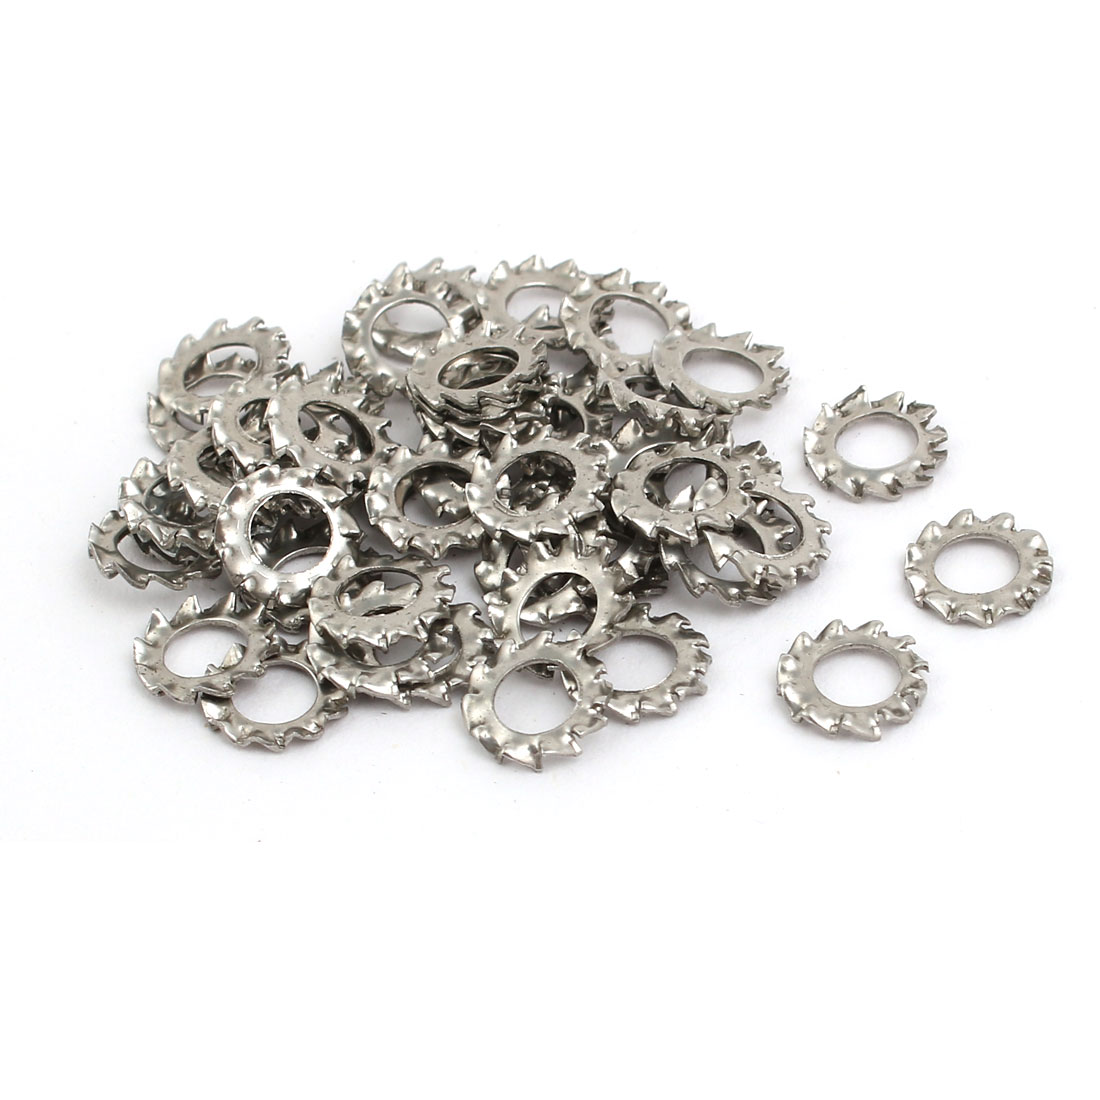 4mm Inner Dia 304 Stainless Steel External Tooth Lock Washer Silver Tone 50pcs